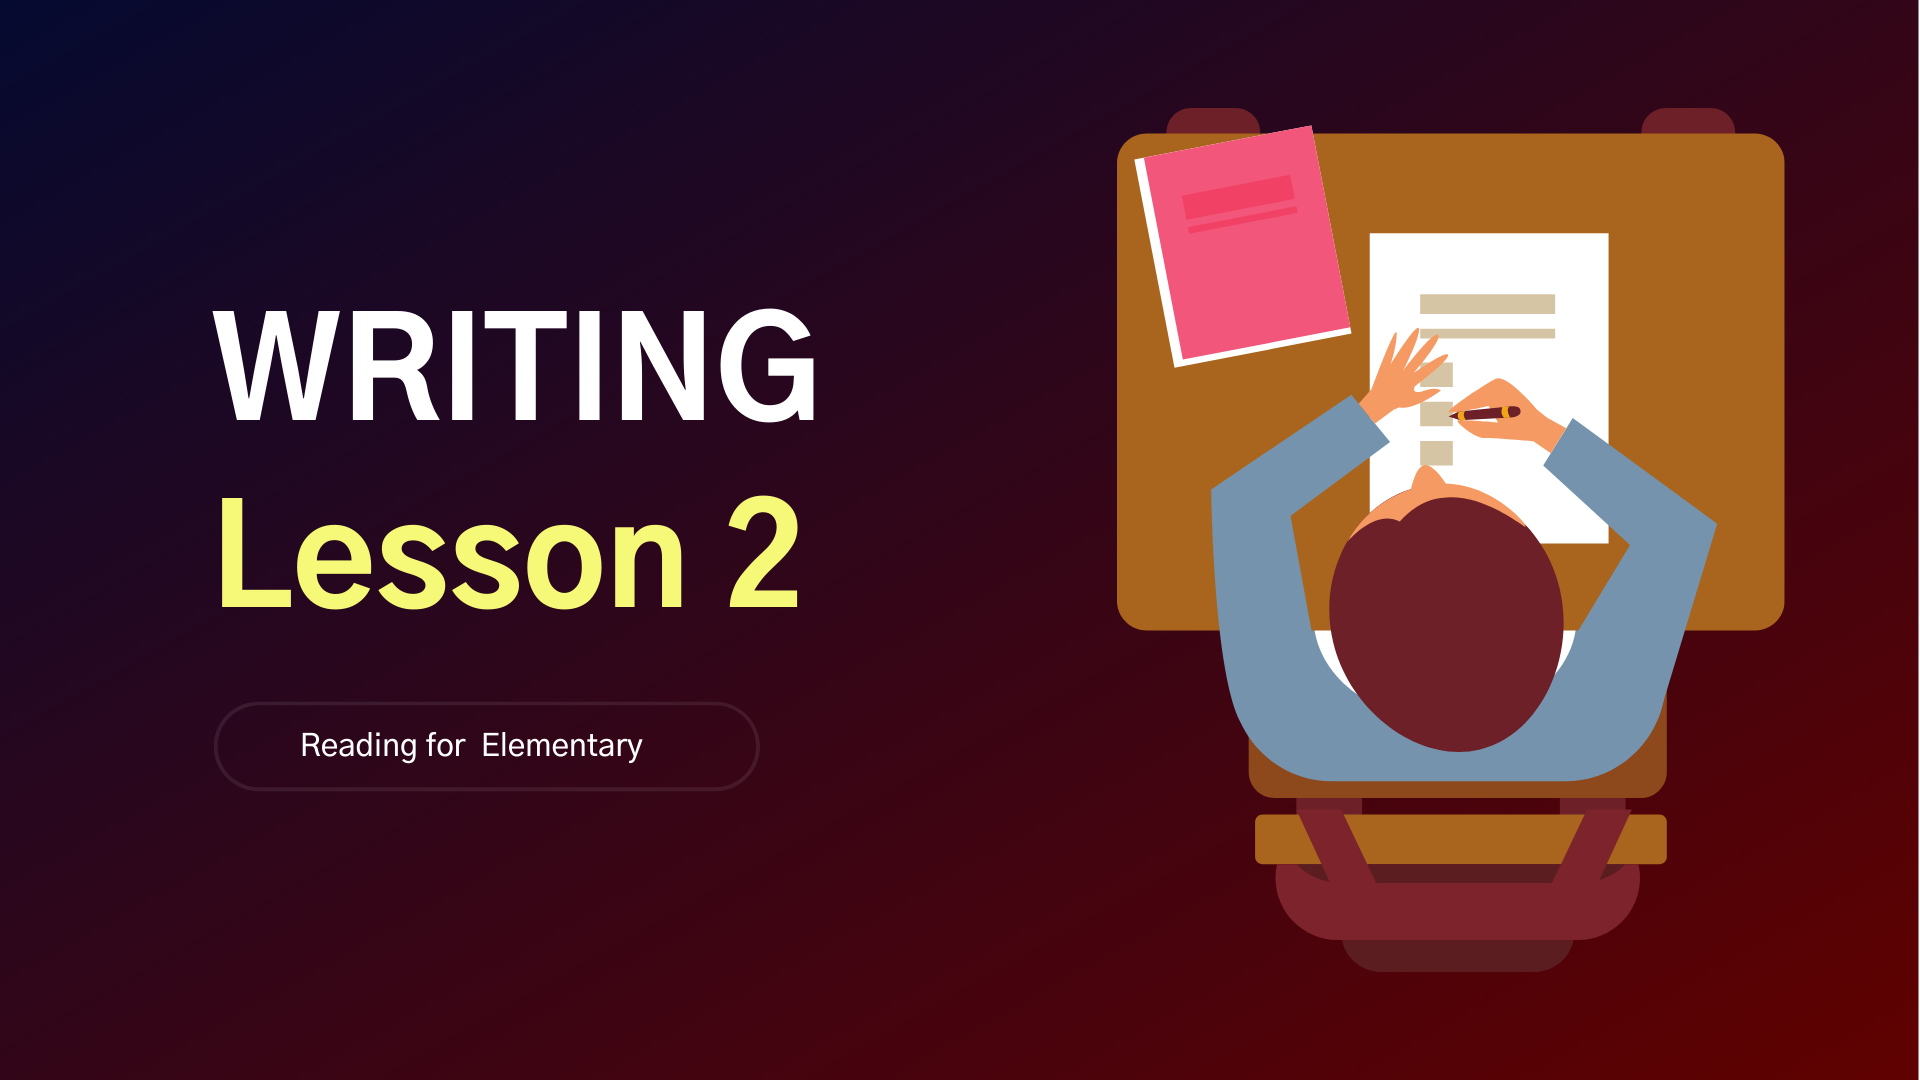 Lesson 2 - Writing for Elementary